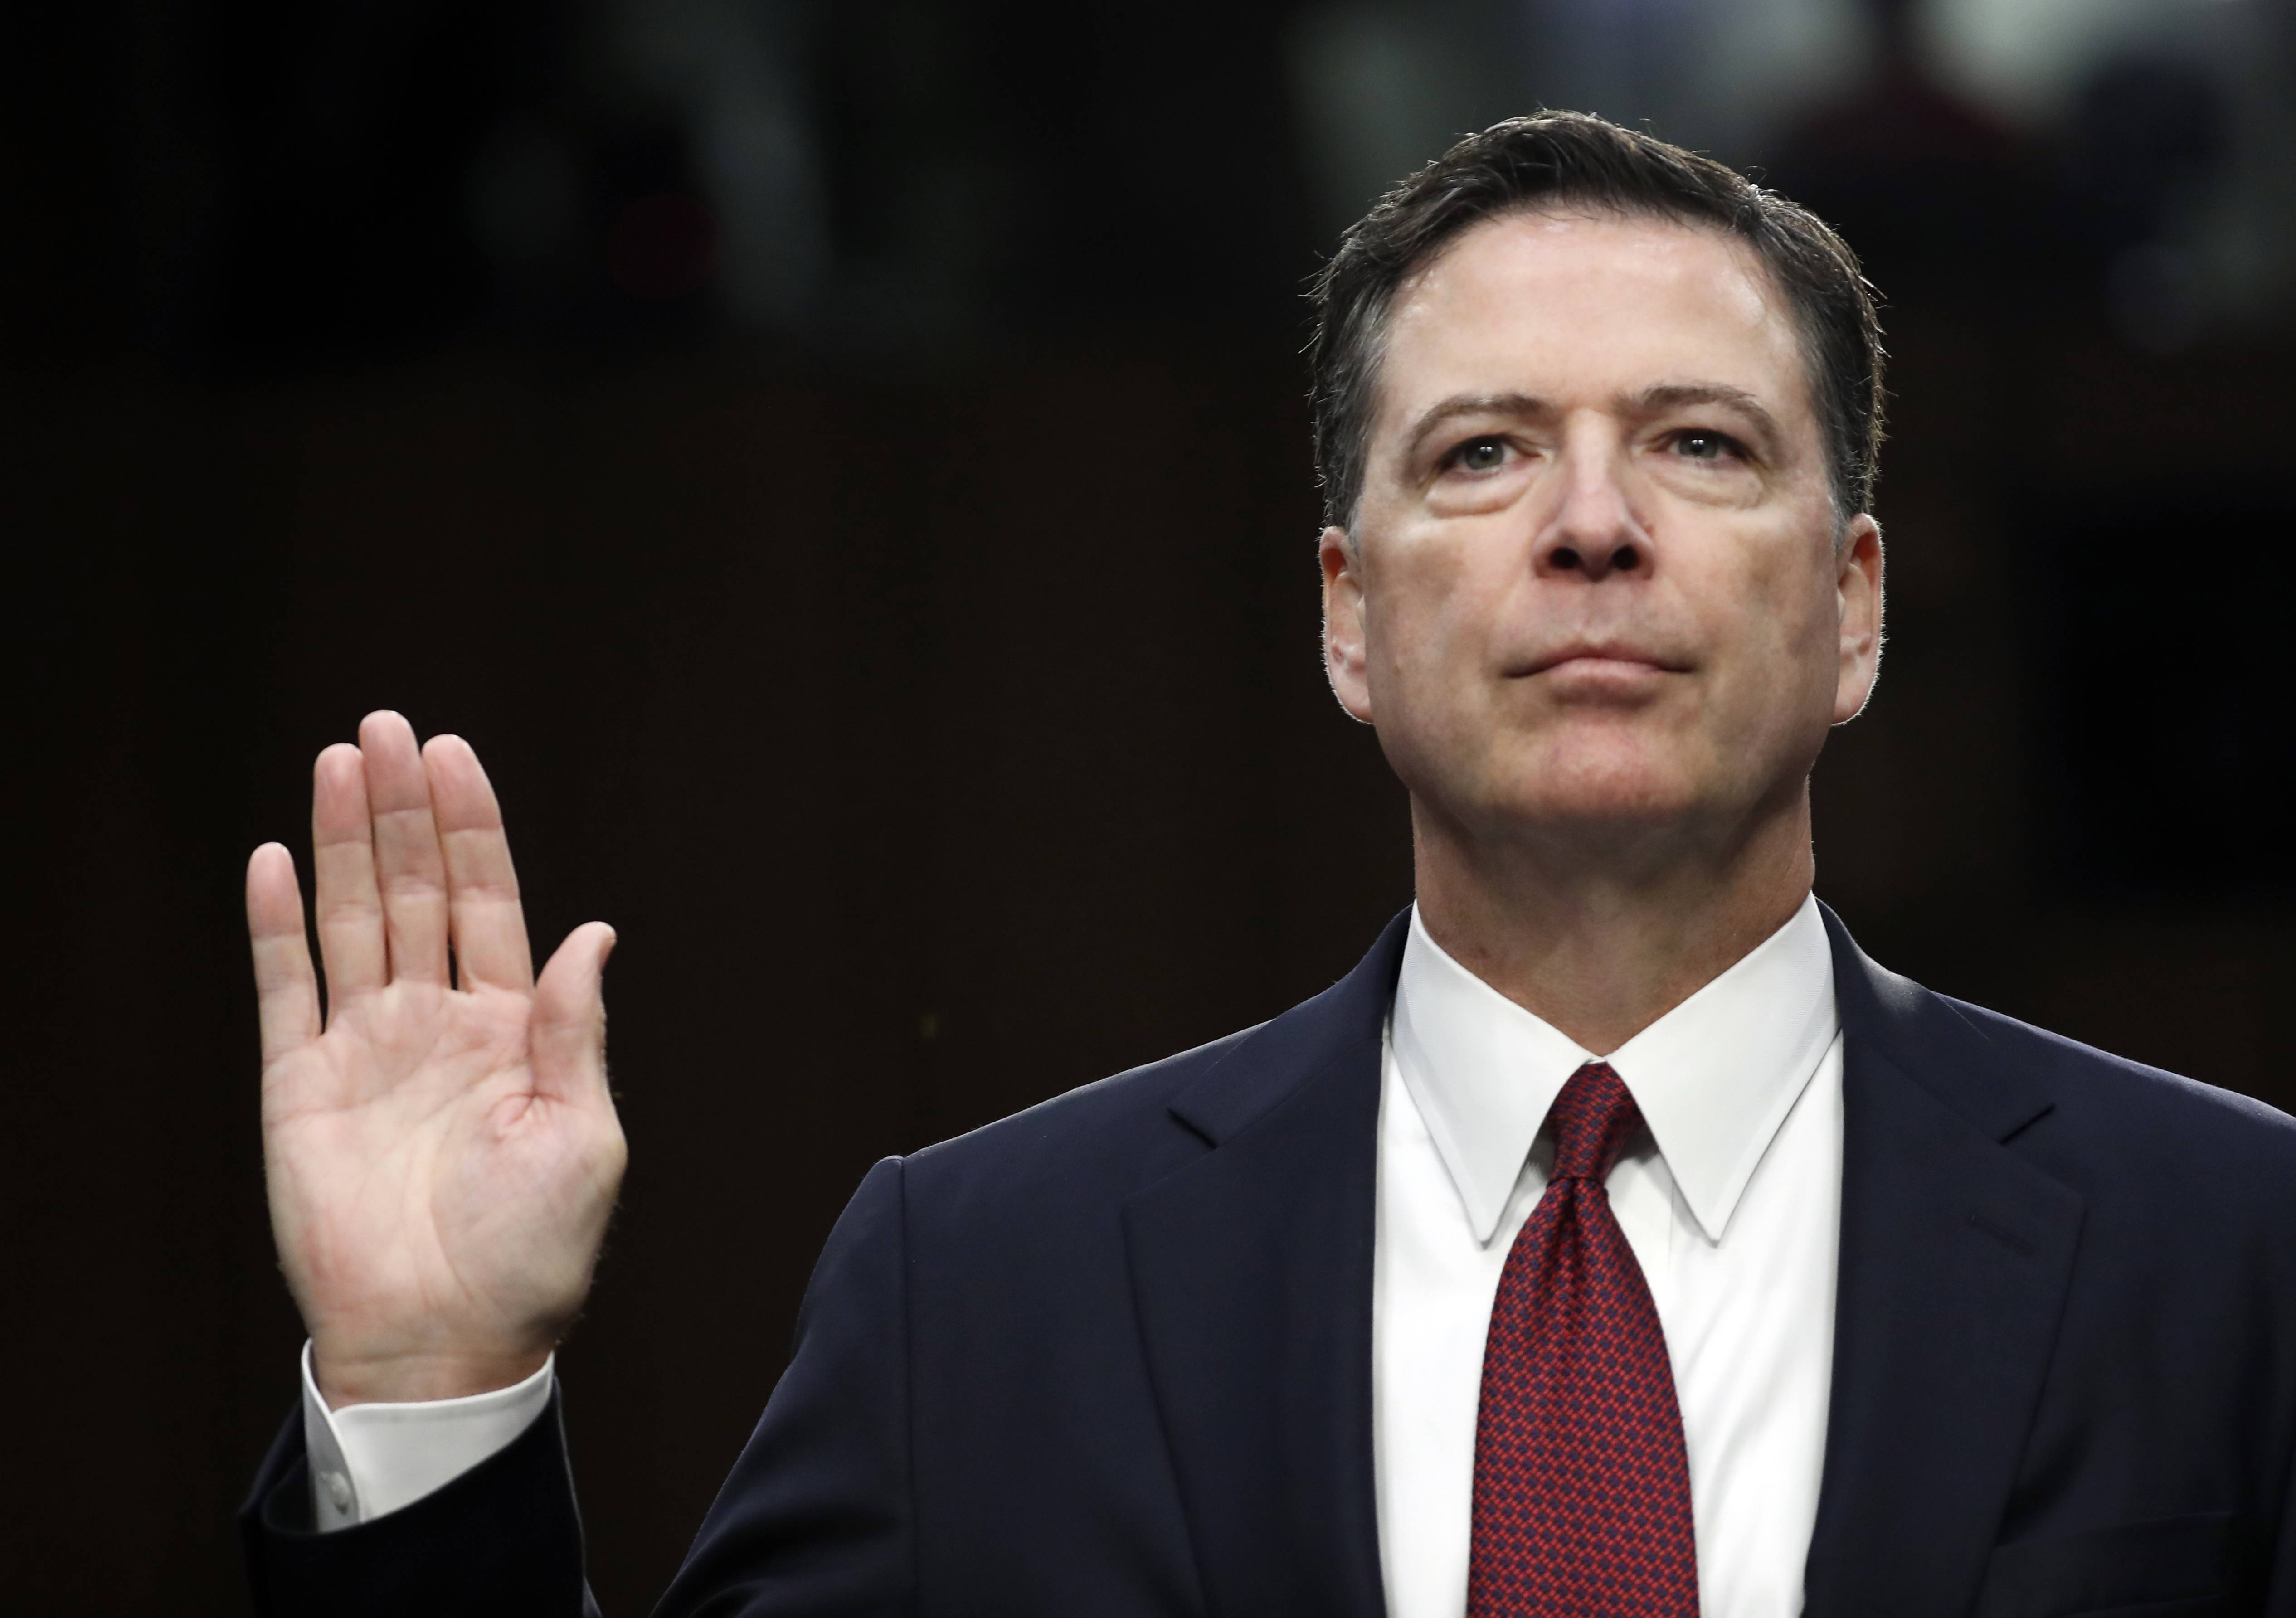 Editorial: Trump's improper bid to influence Comey probe